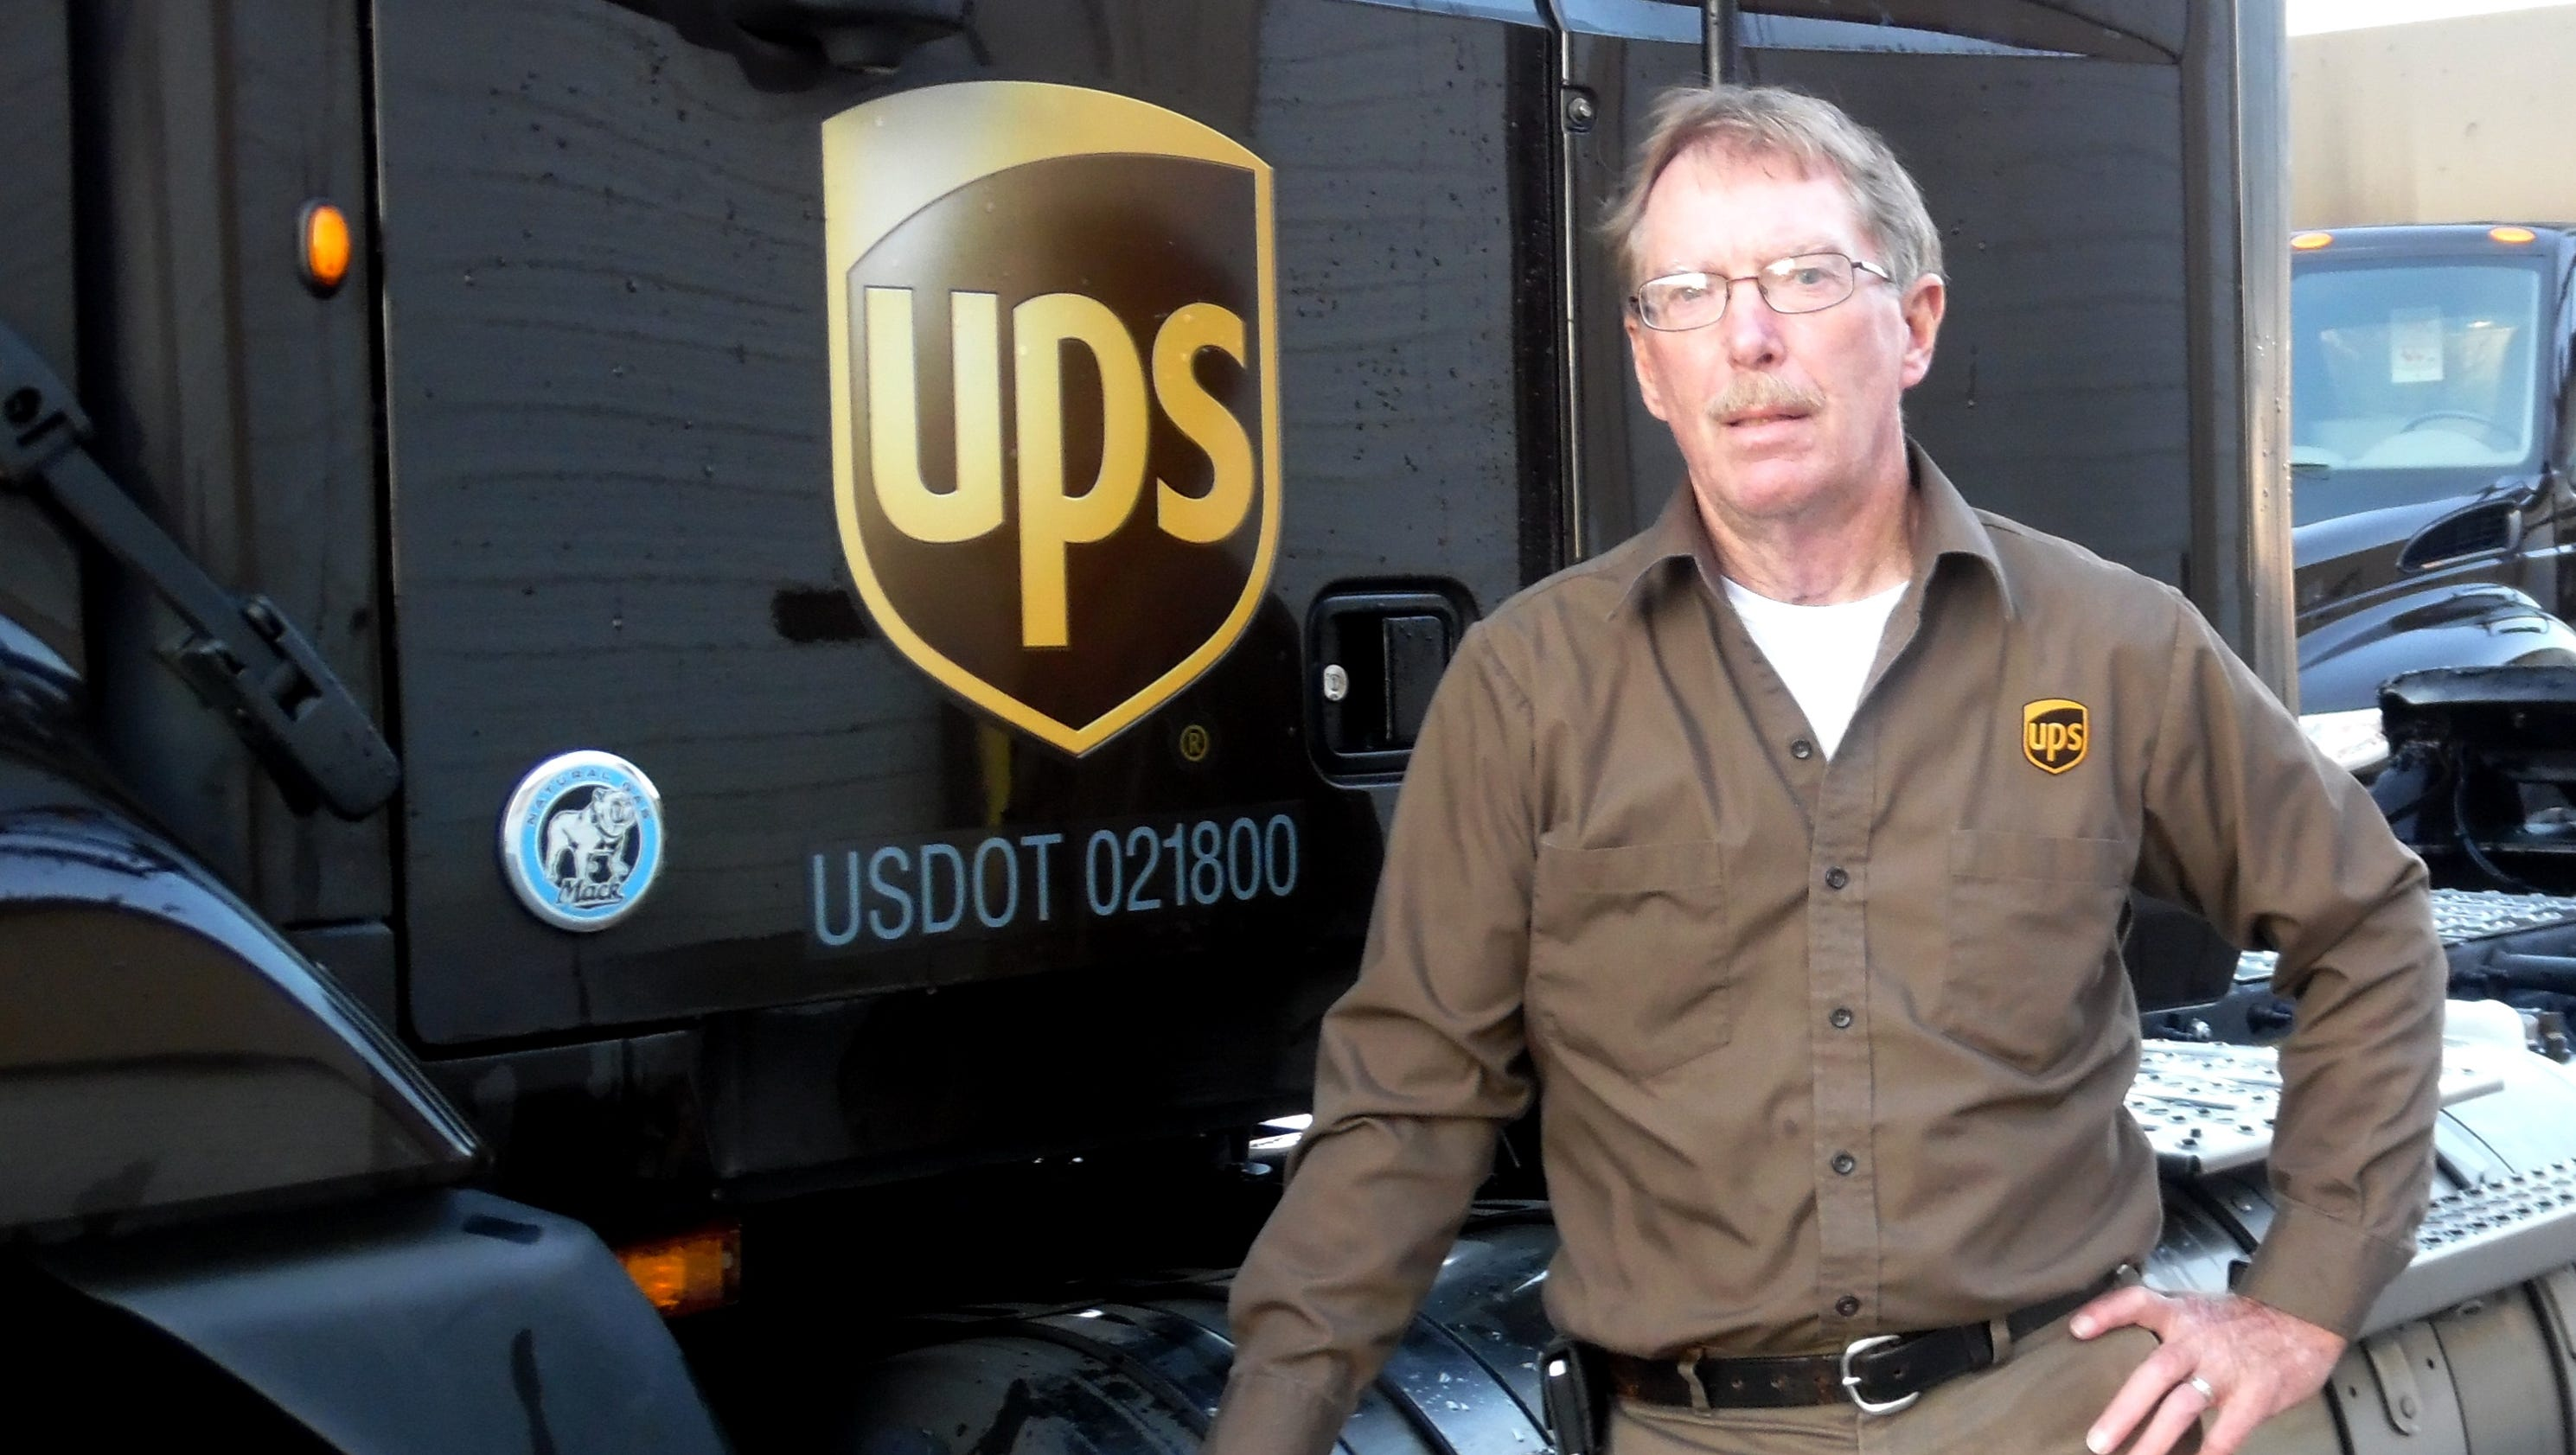 Ups Hiring 893 People In Indy For Holiday Season